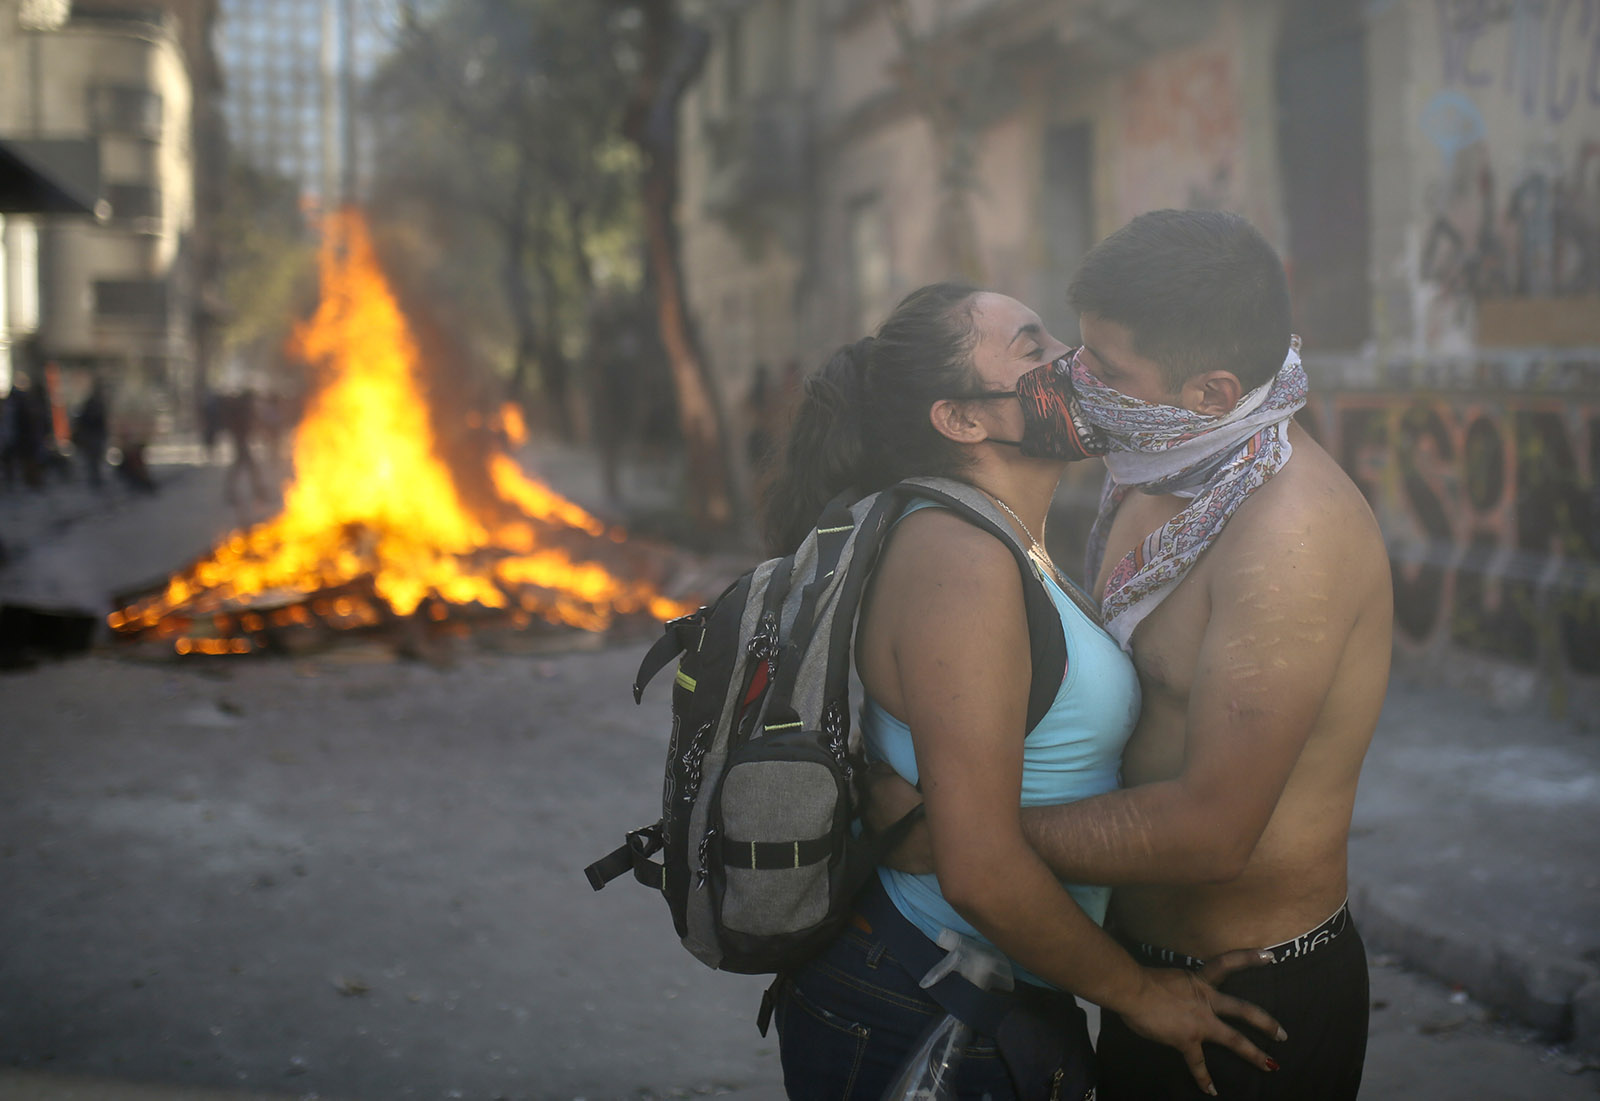 A couple kissing next to a burning barricade, Chile